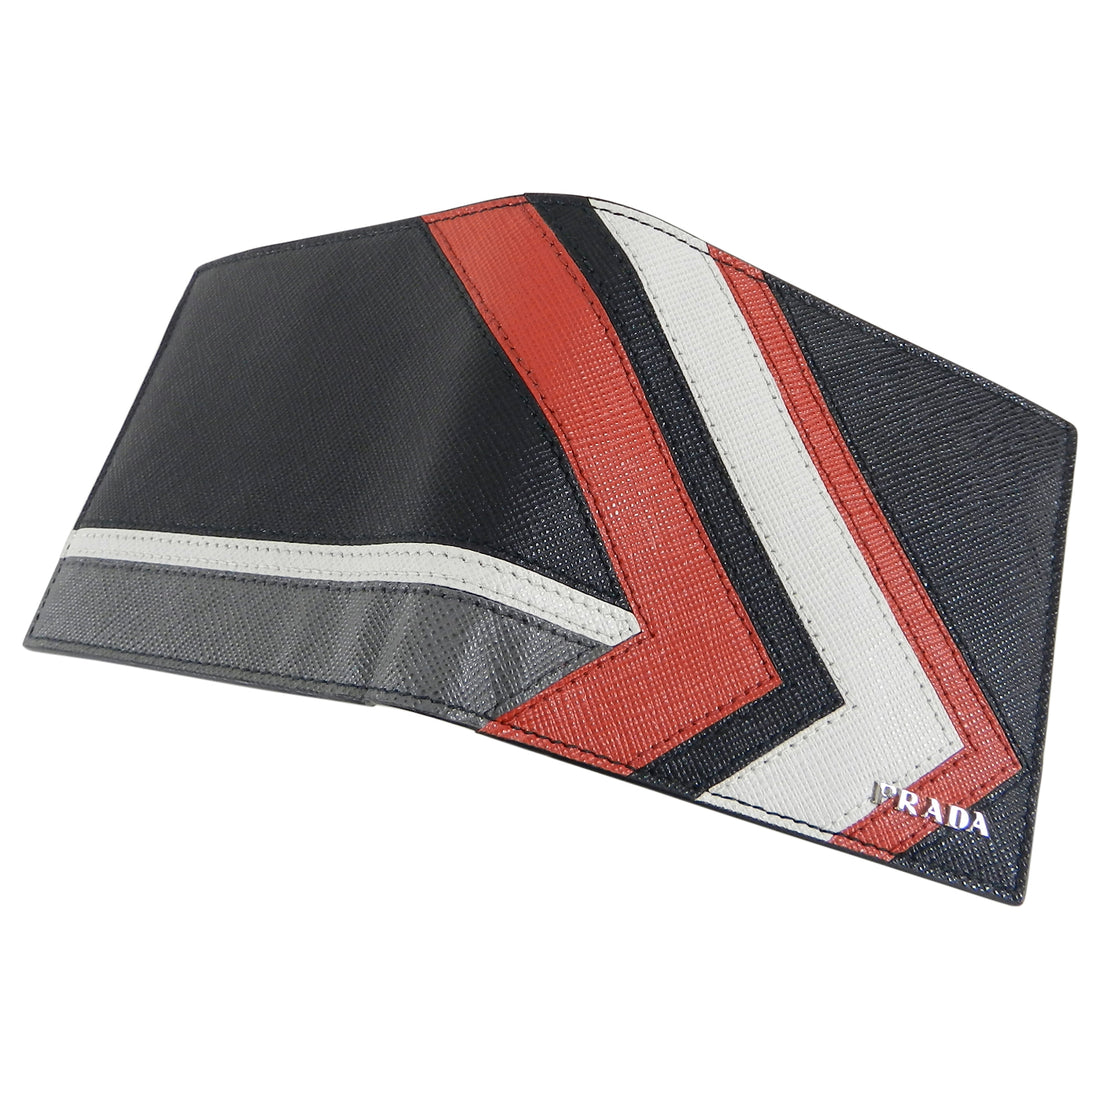 Prada Black, Red, Grey, White, Chevron Bifold Saffiano Leather Wallet